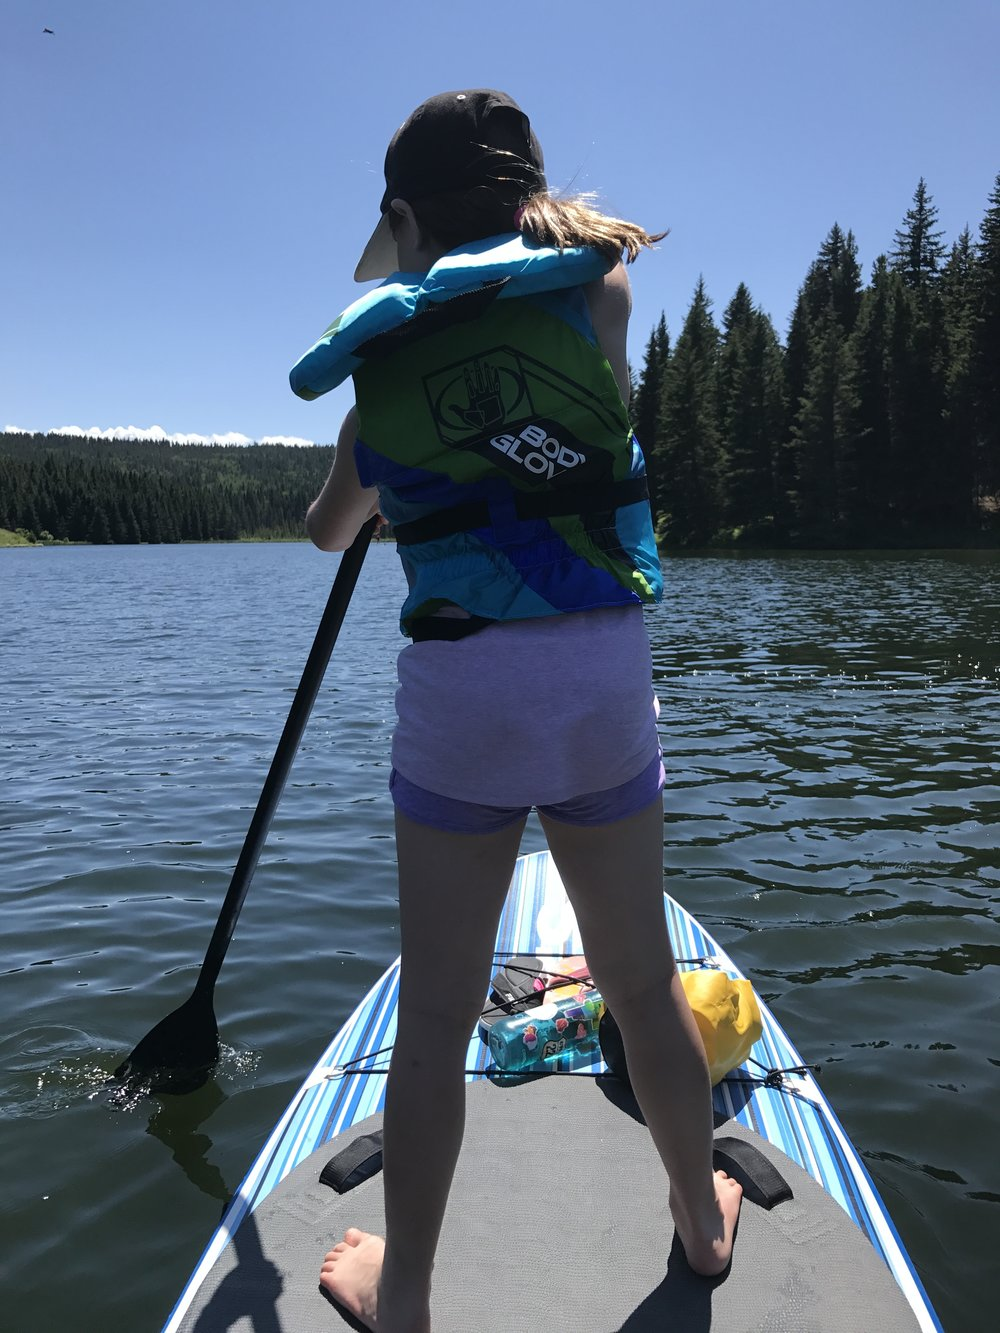 Sophie rocking the SUP at Spruce Coulee, Cypress Hills Provincial Park.